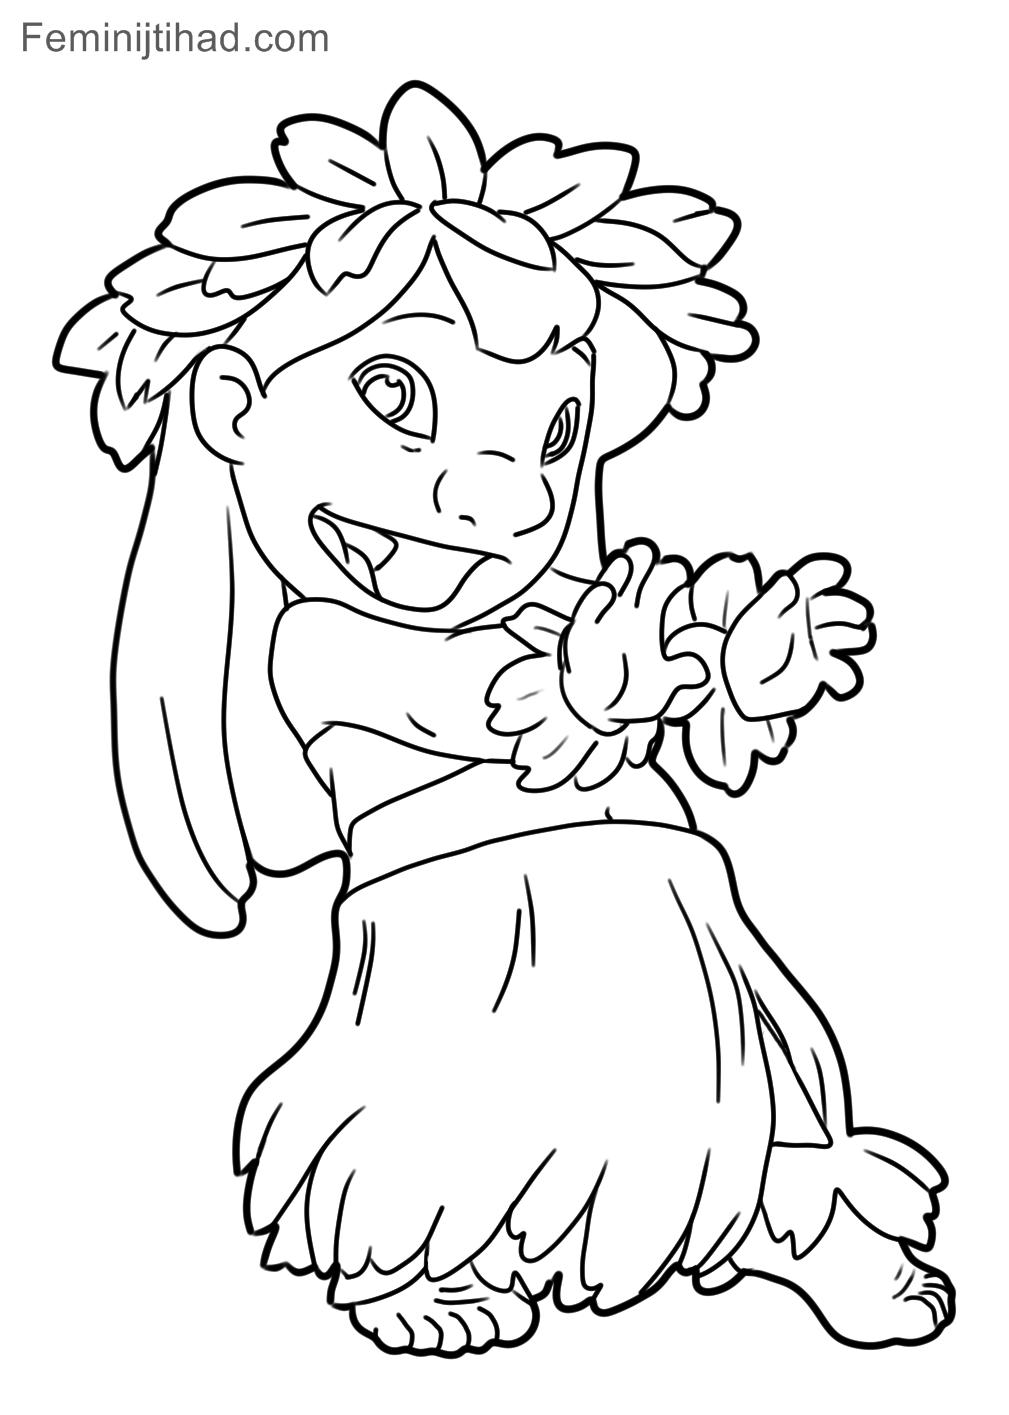 1009x1415 Lilo And Stitch Coloring Pages Free Download Coloring Pages For Kids